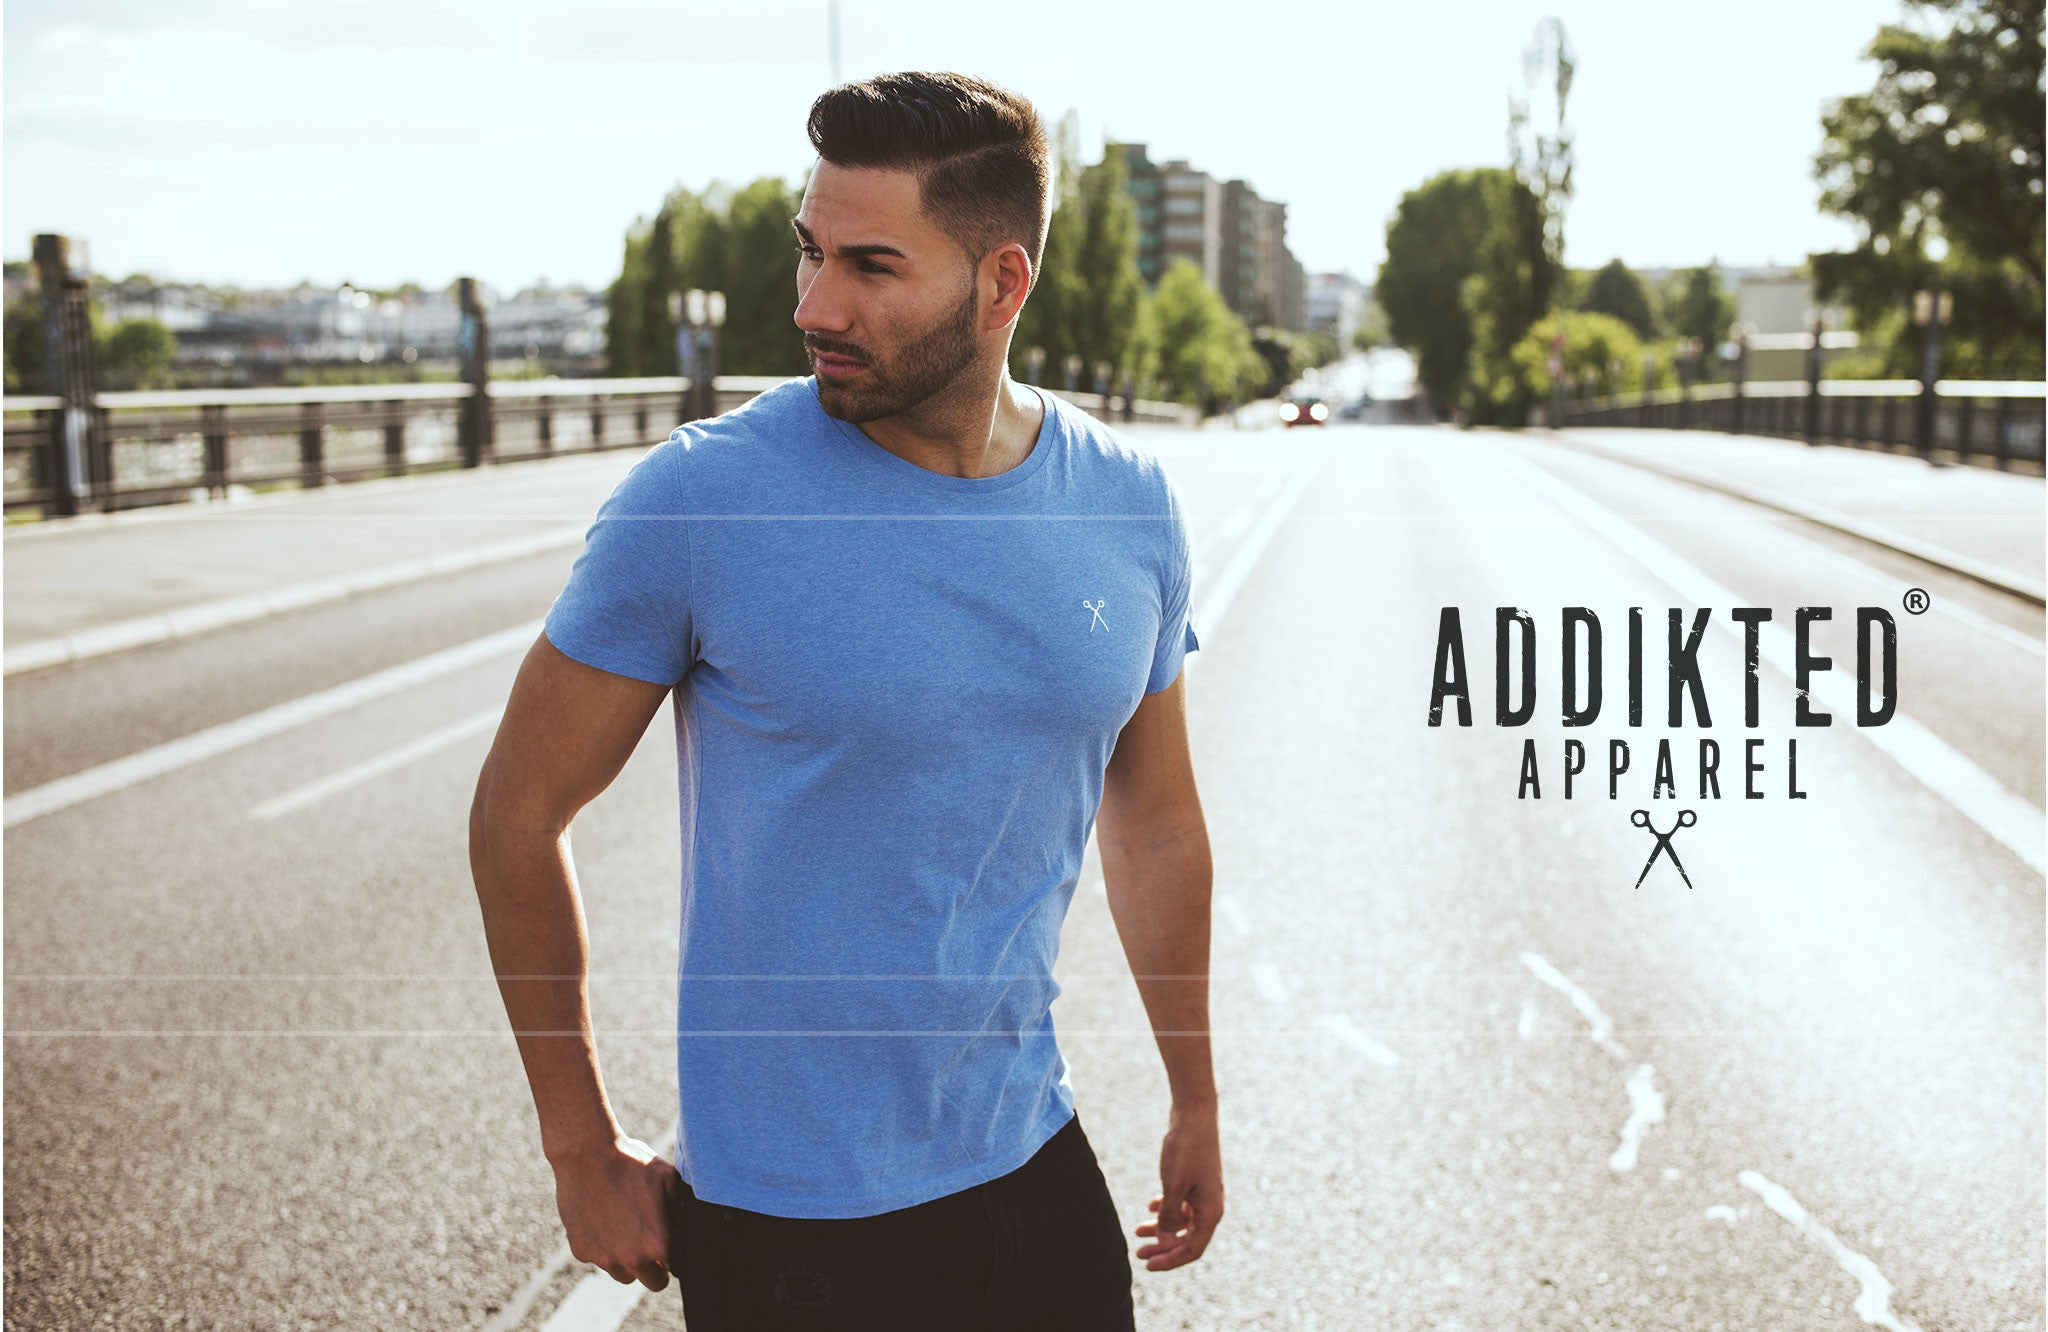 Addikted Apparel - About Us